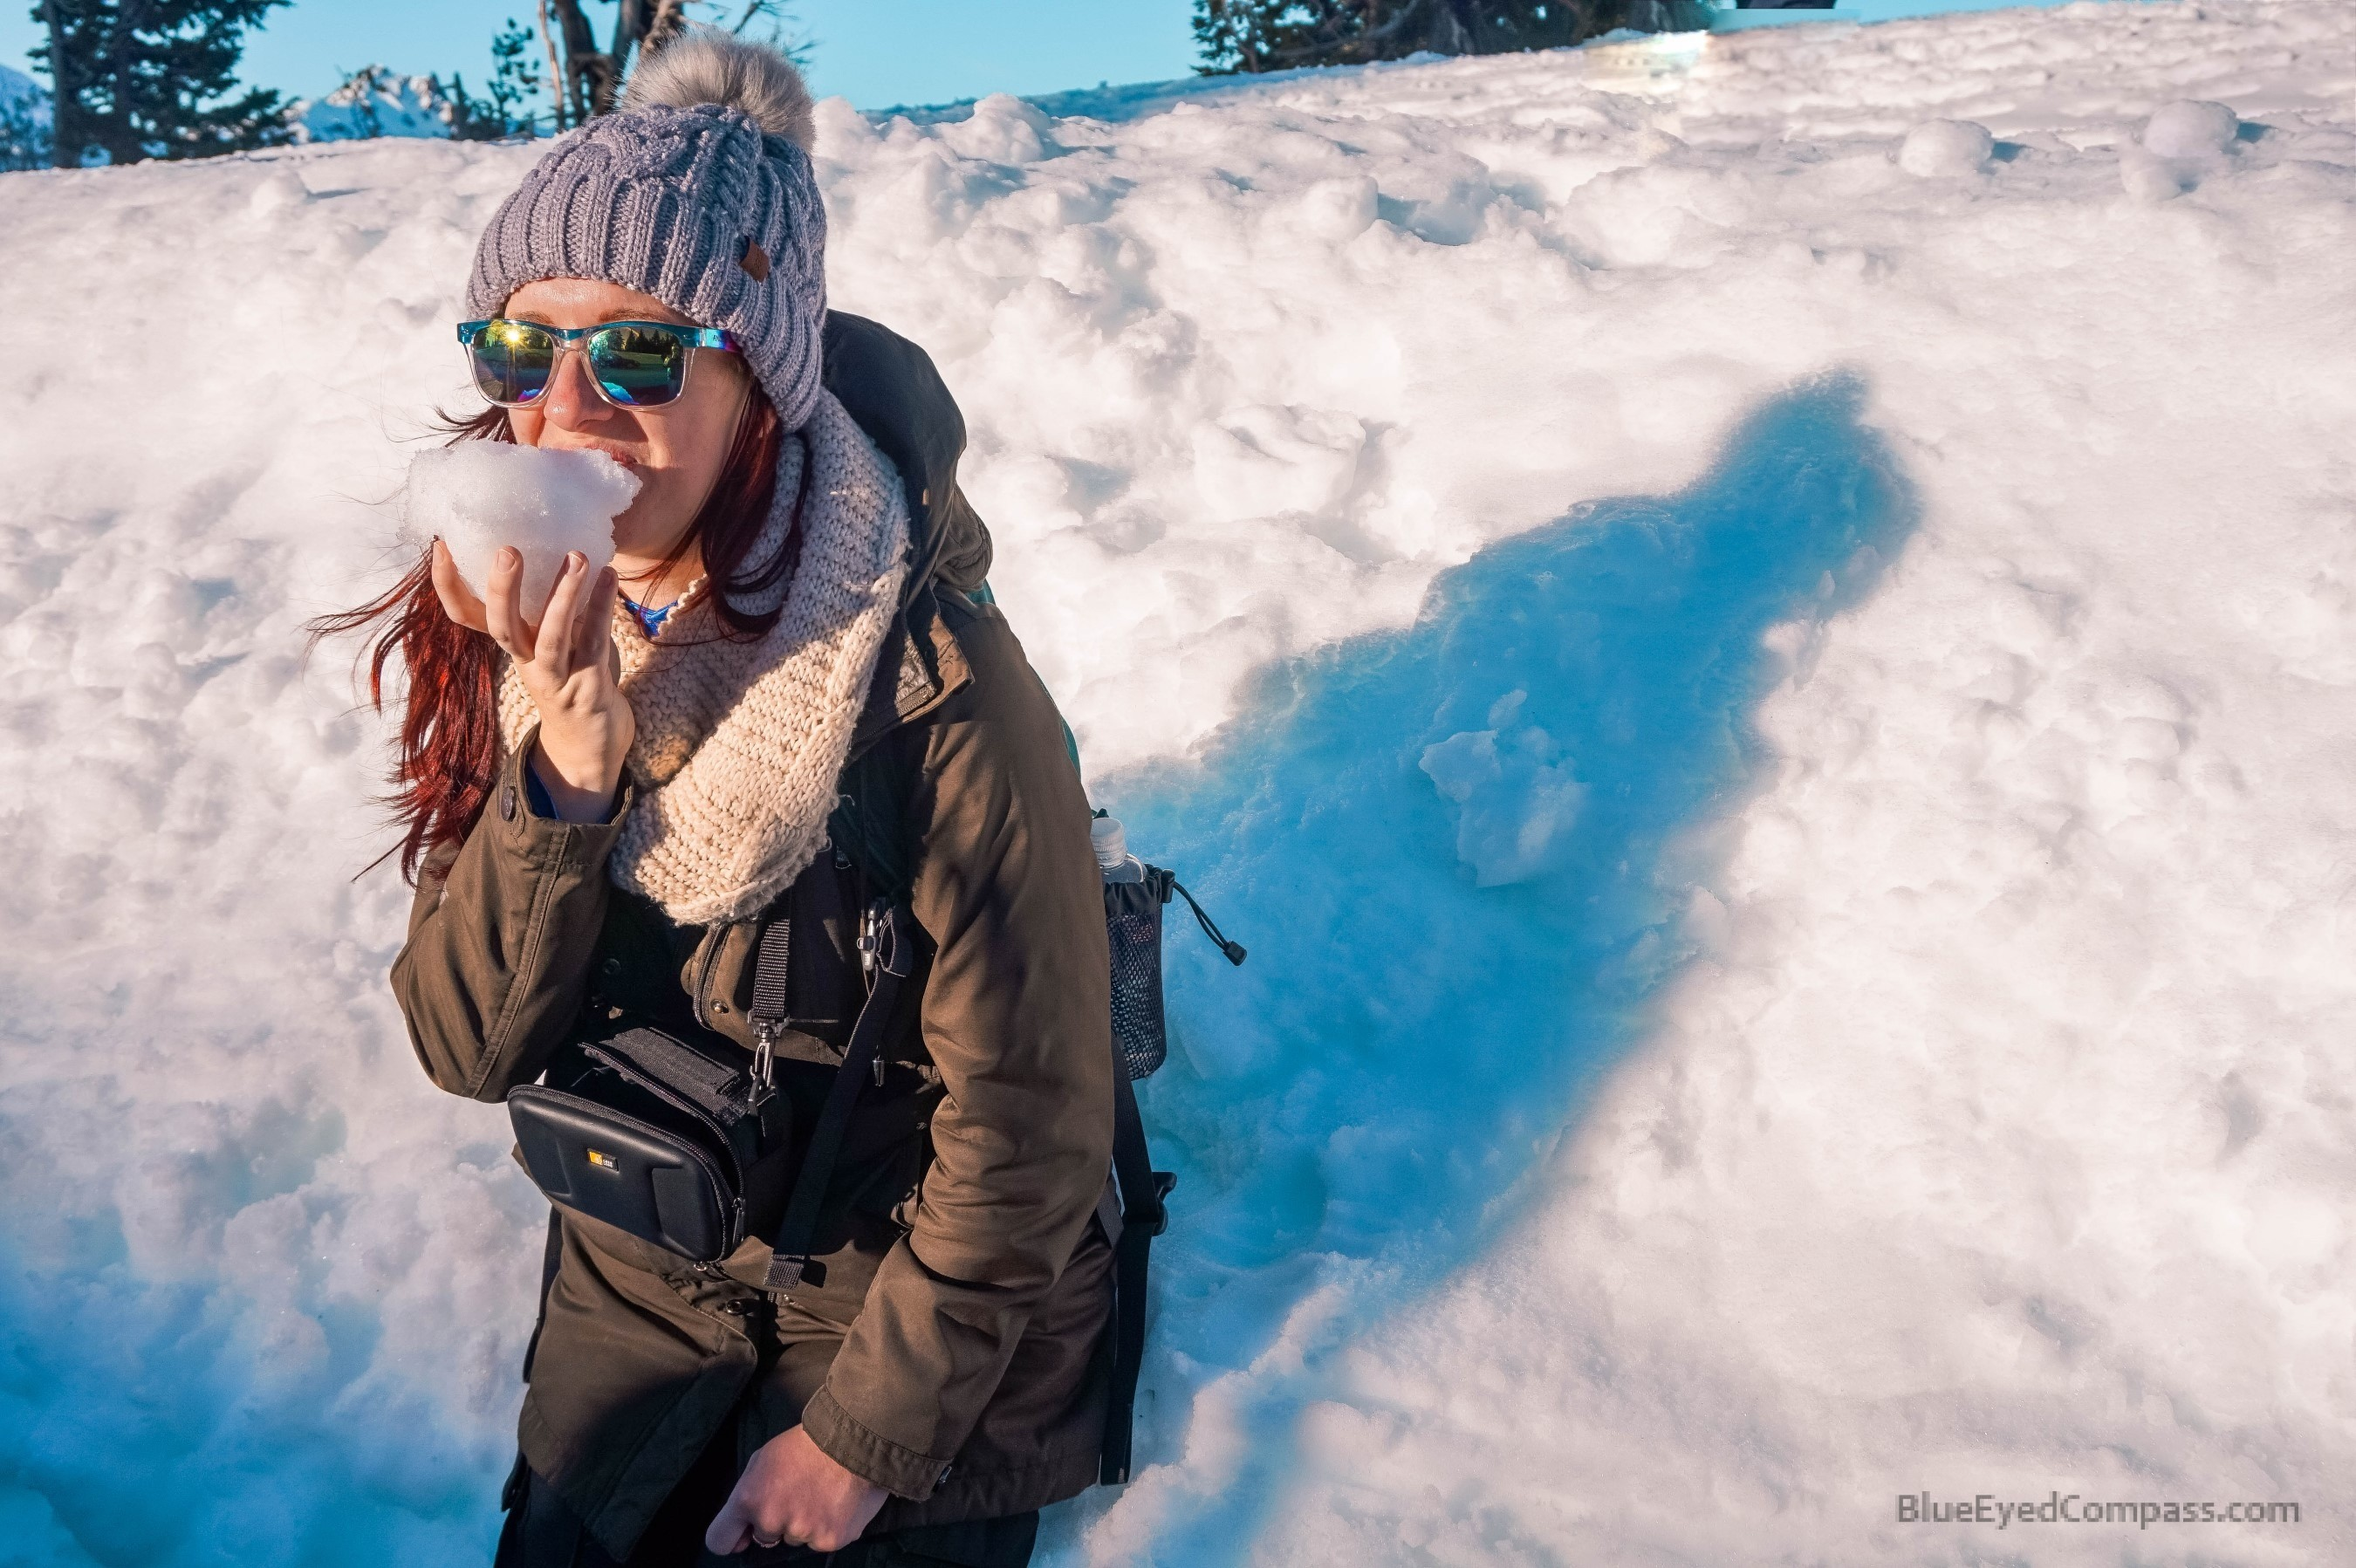 Crater Lake National Park | Blue Eyed Compass